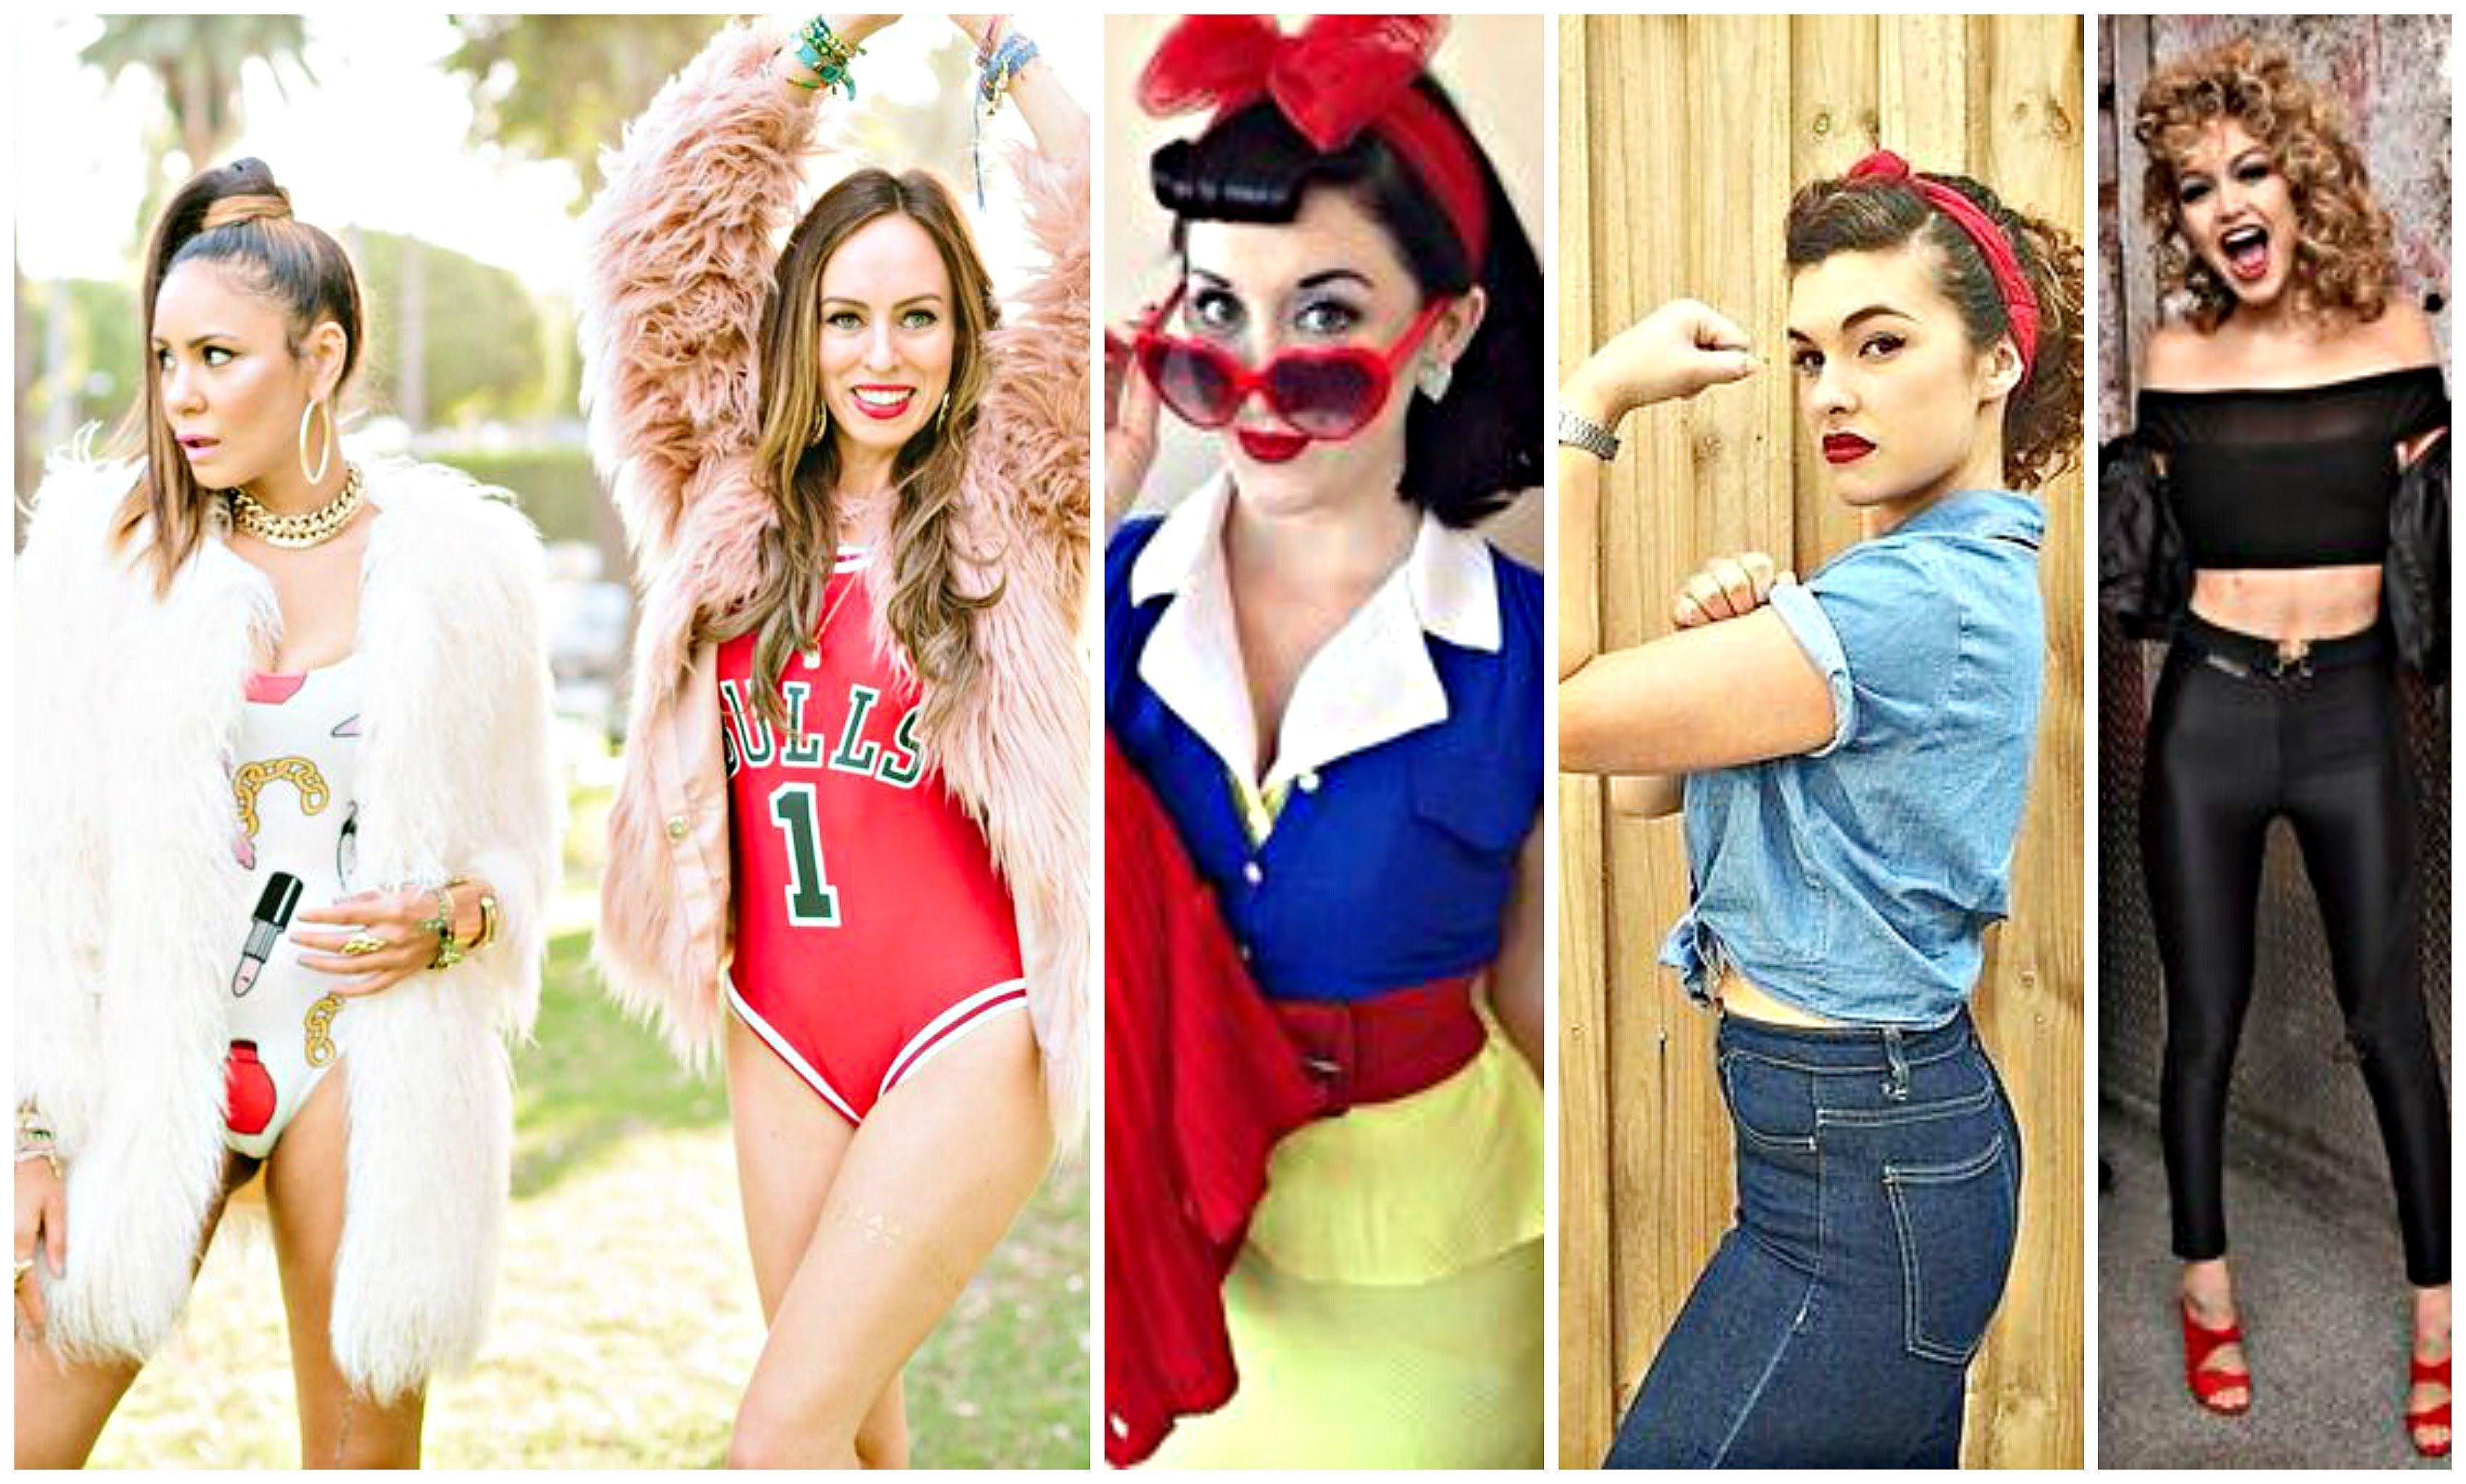 10 Awesome Original Halloween Costume Ideas For Women top halloween costume ideas for women youtube 7 2021